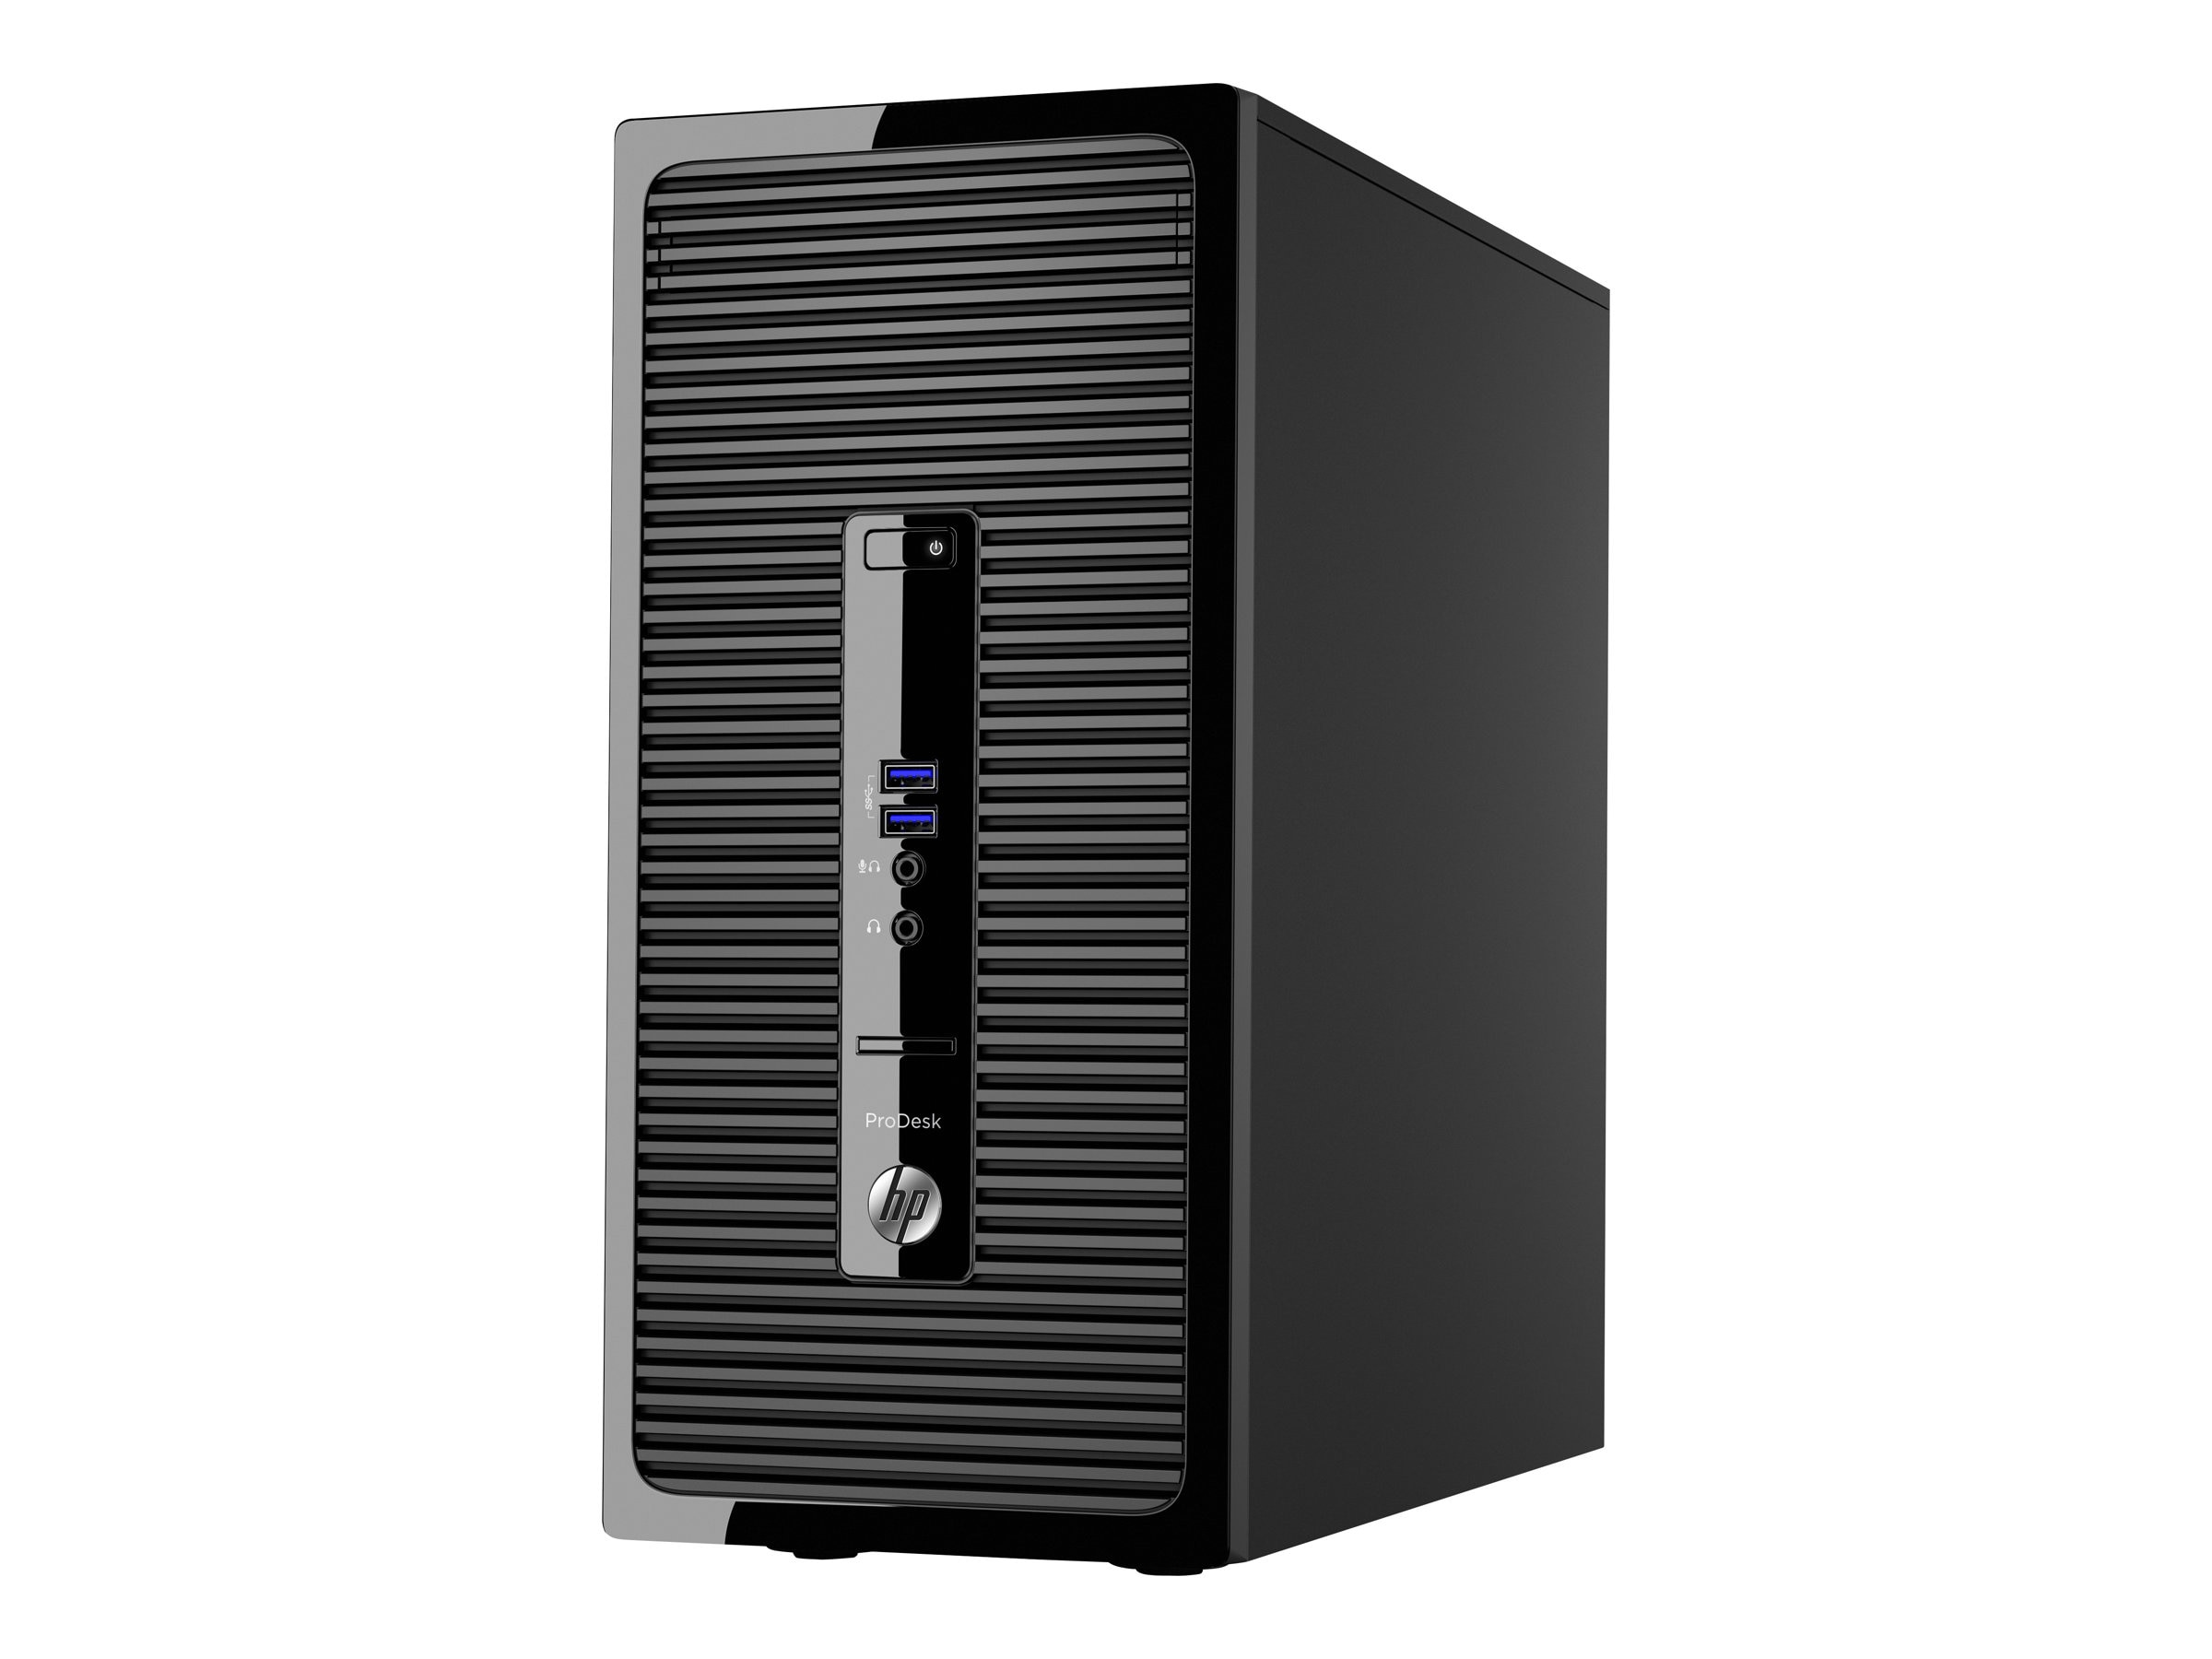 HP ProDesk 400 G3 3.2GHz Core i5 4GB RAM 500GB hard drive